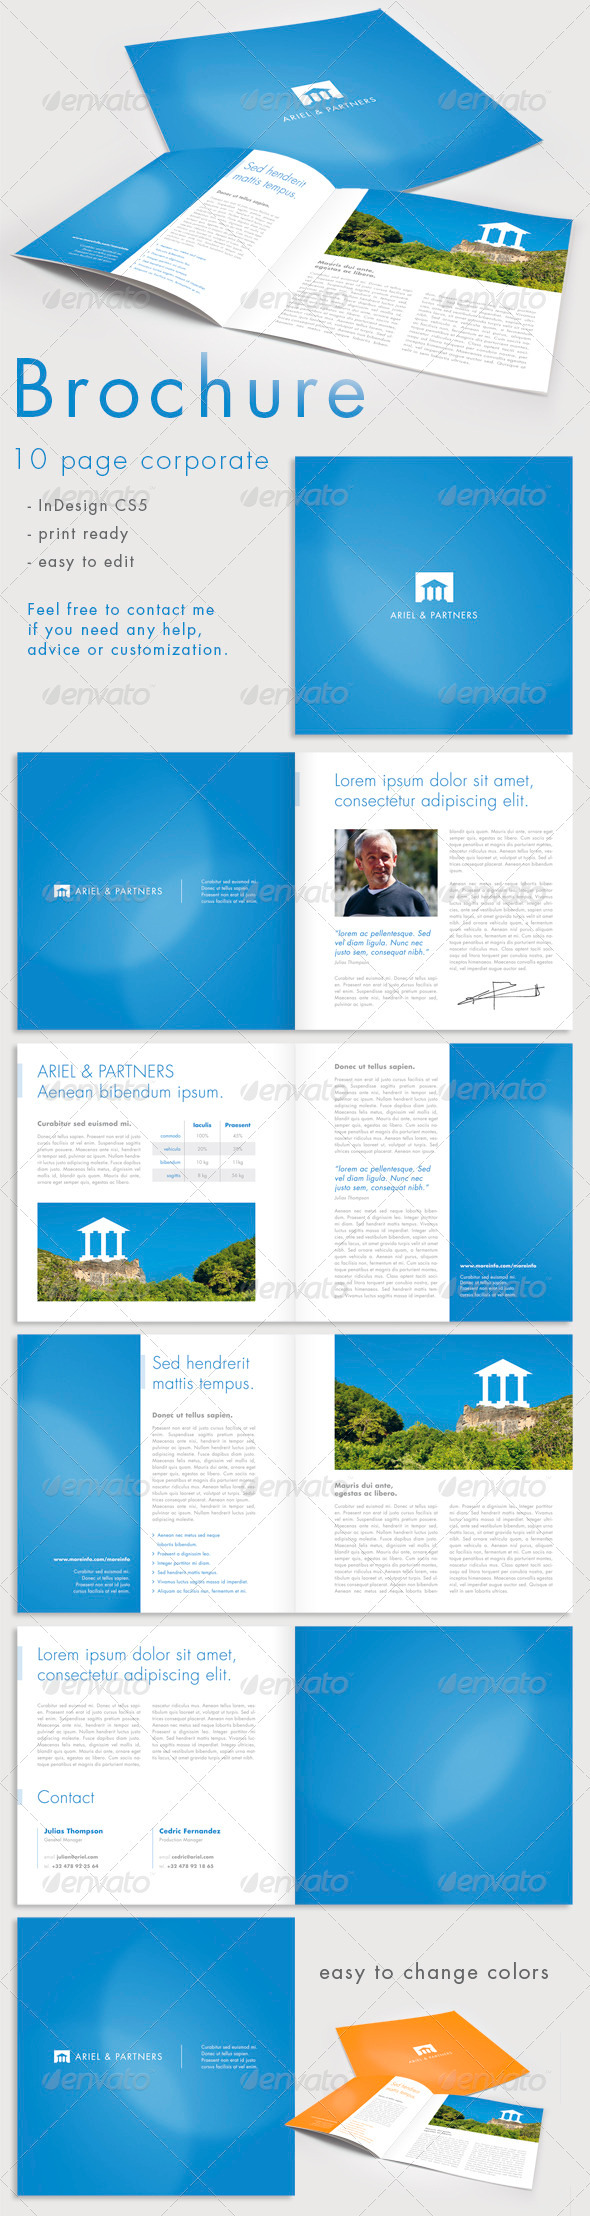 Free download poster indesign template free programs for Indesign cs5 templates free download